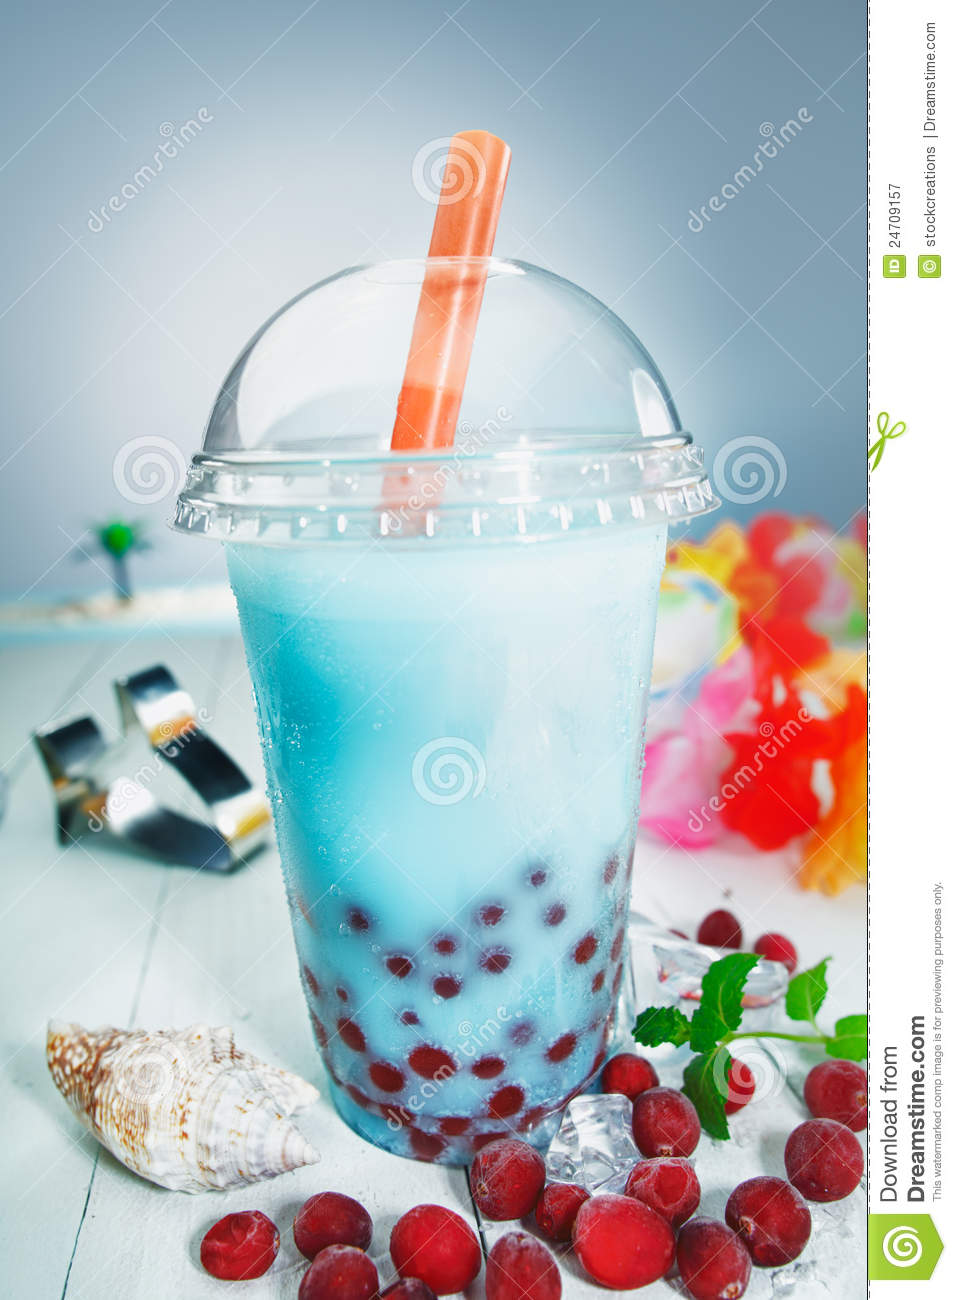 Colourful Healthy Boba Or Bubble Tea Stock Image Image